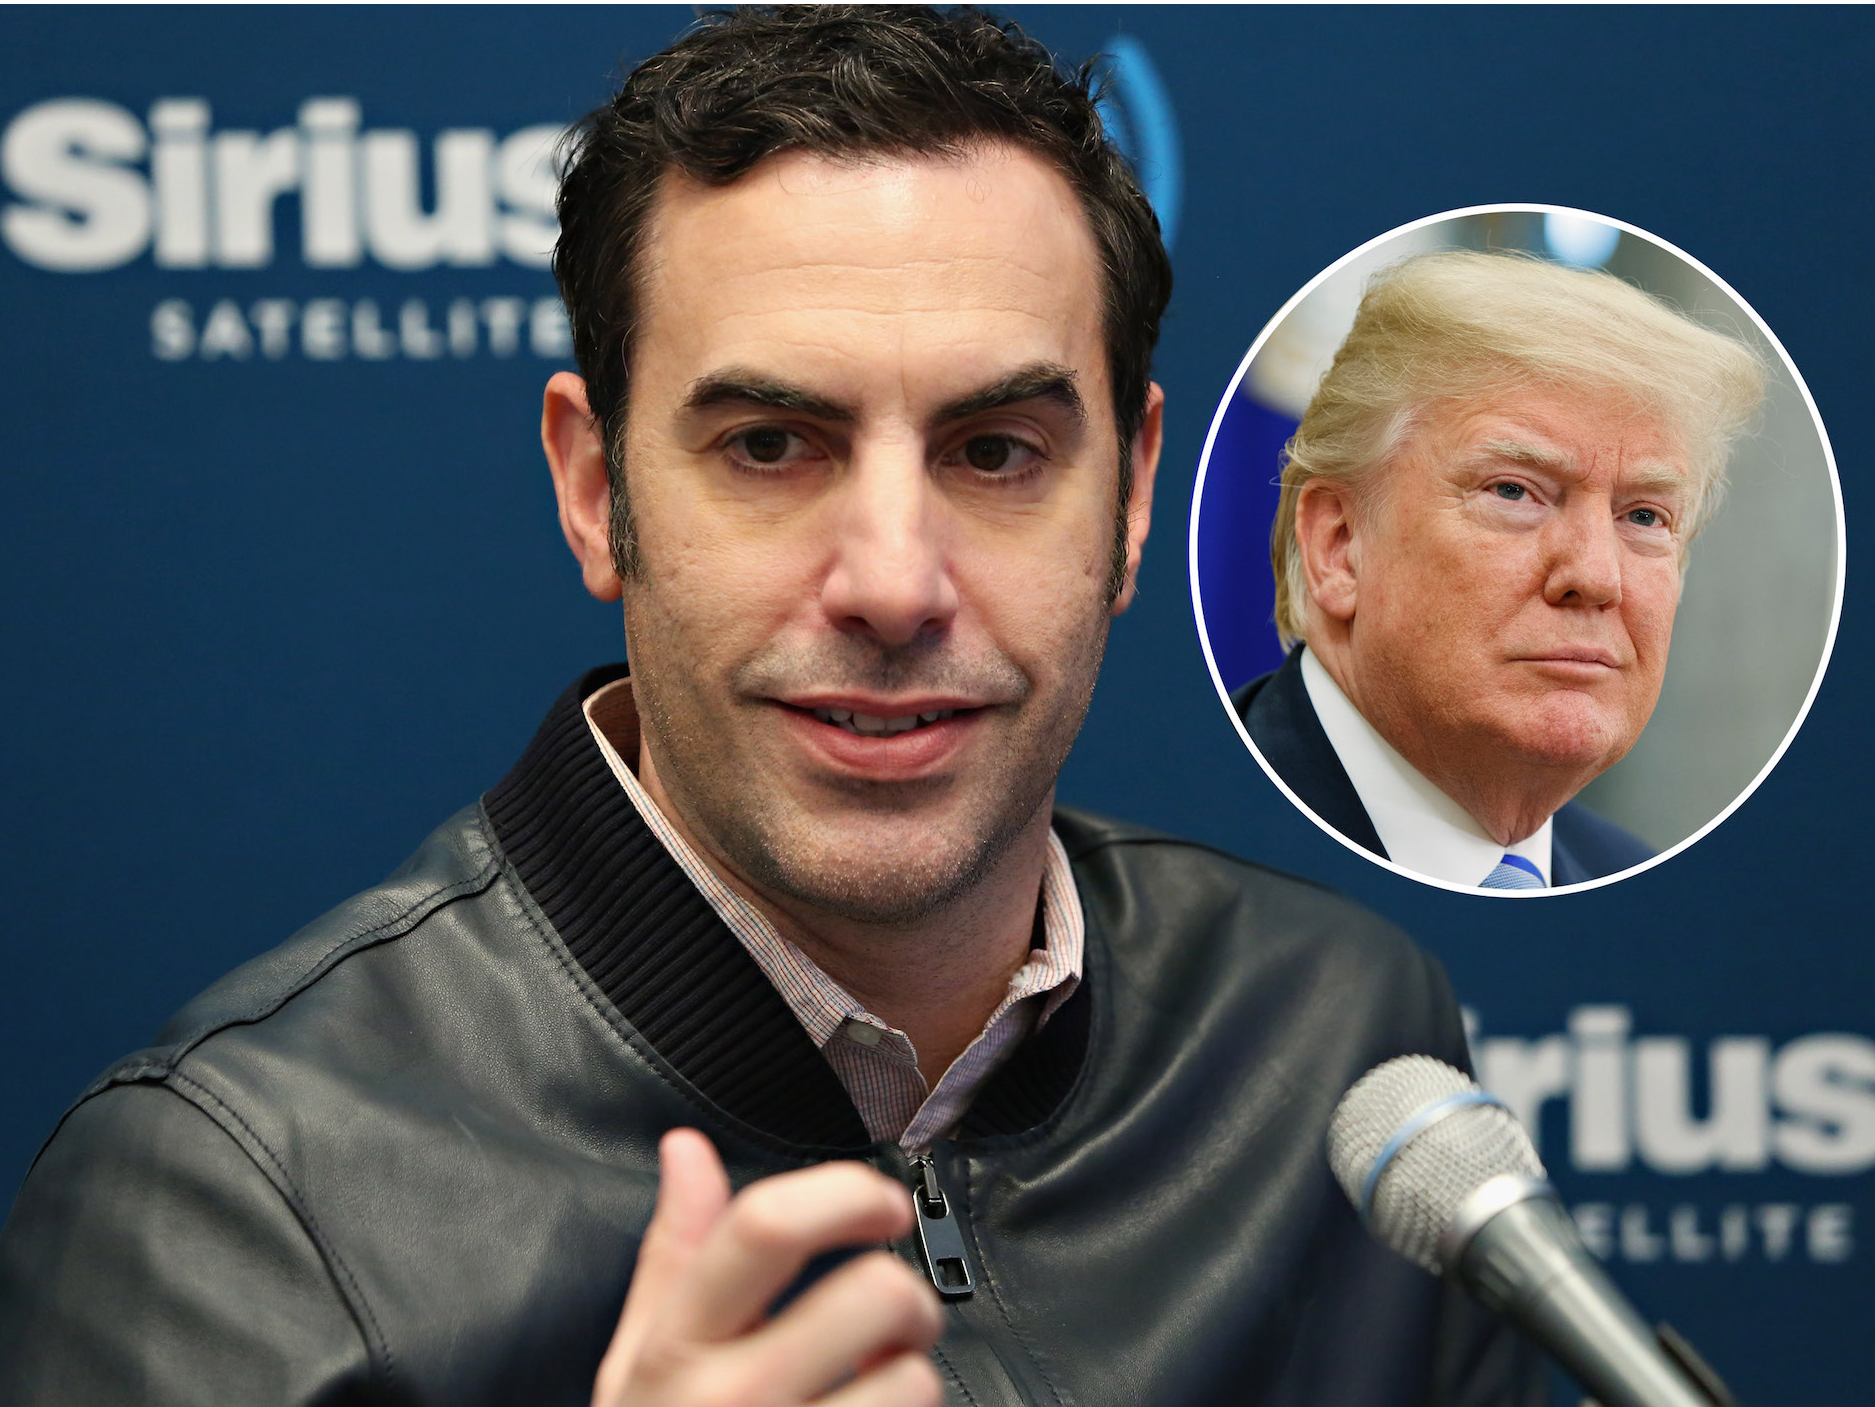 Comedian Sacha Baron Cohen Teased A Trump Themed Project On Twitter Comedians Sacha Baron Cohen Trump University